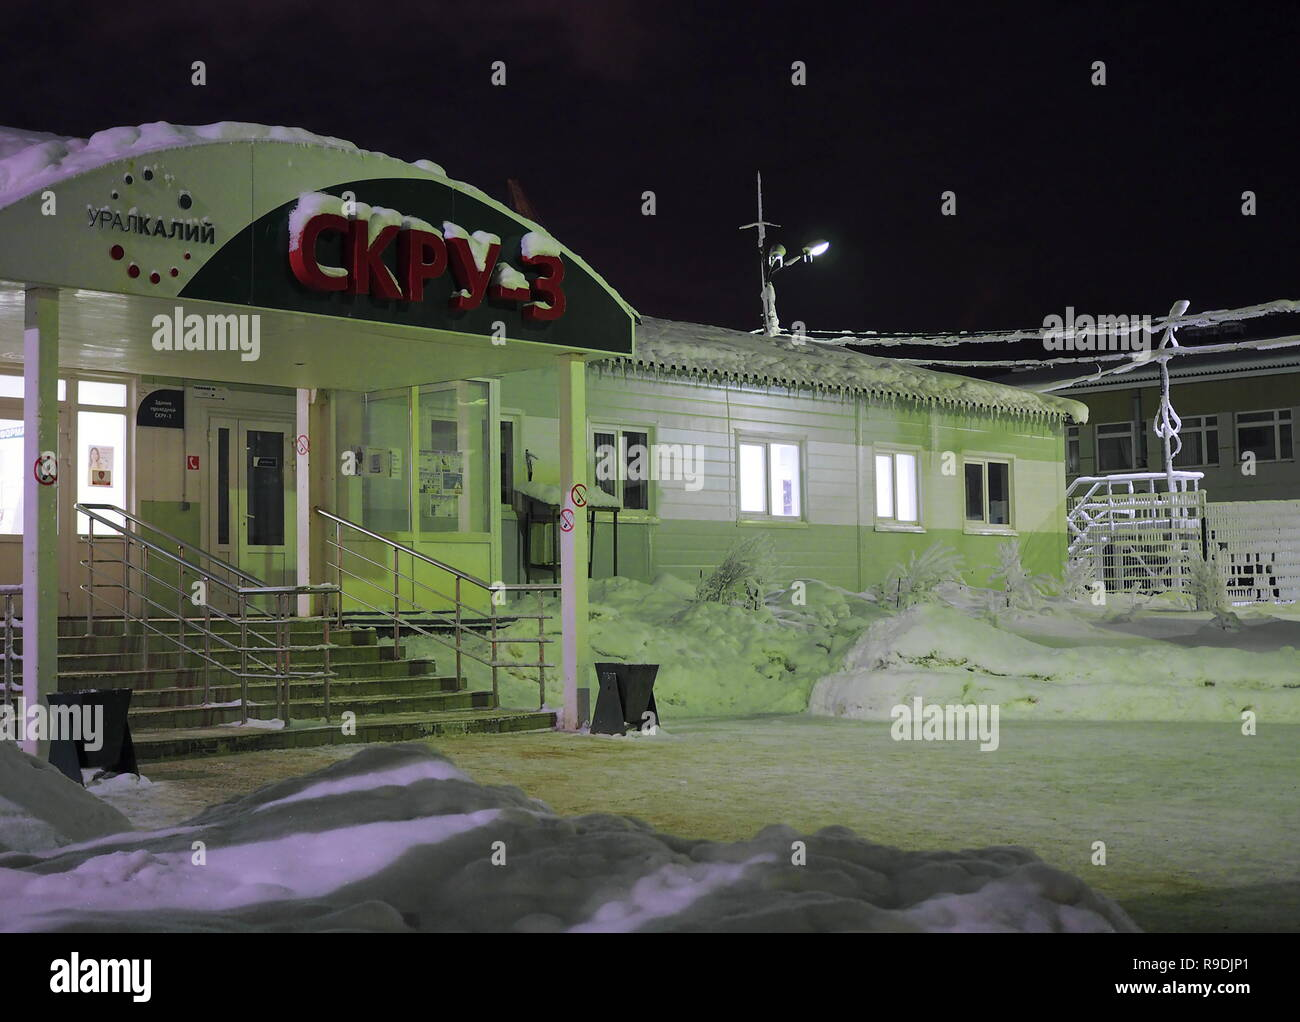 Solikamsk, Russia  22nd Dec, 2018  A night view of the SKRU